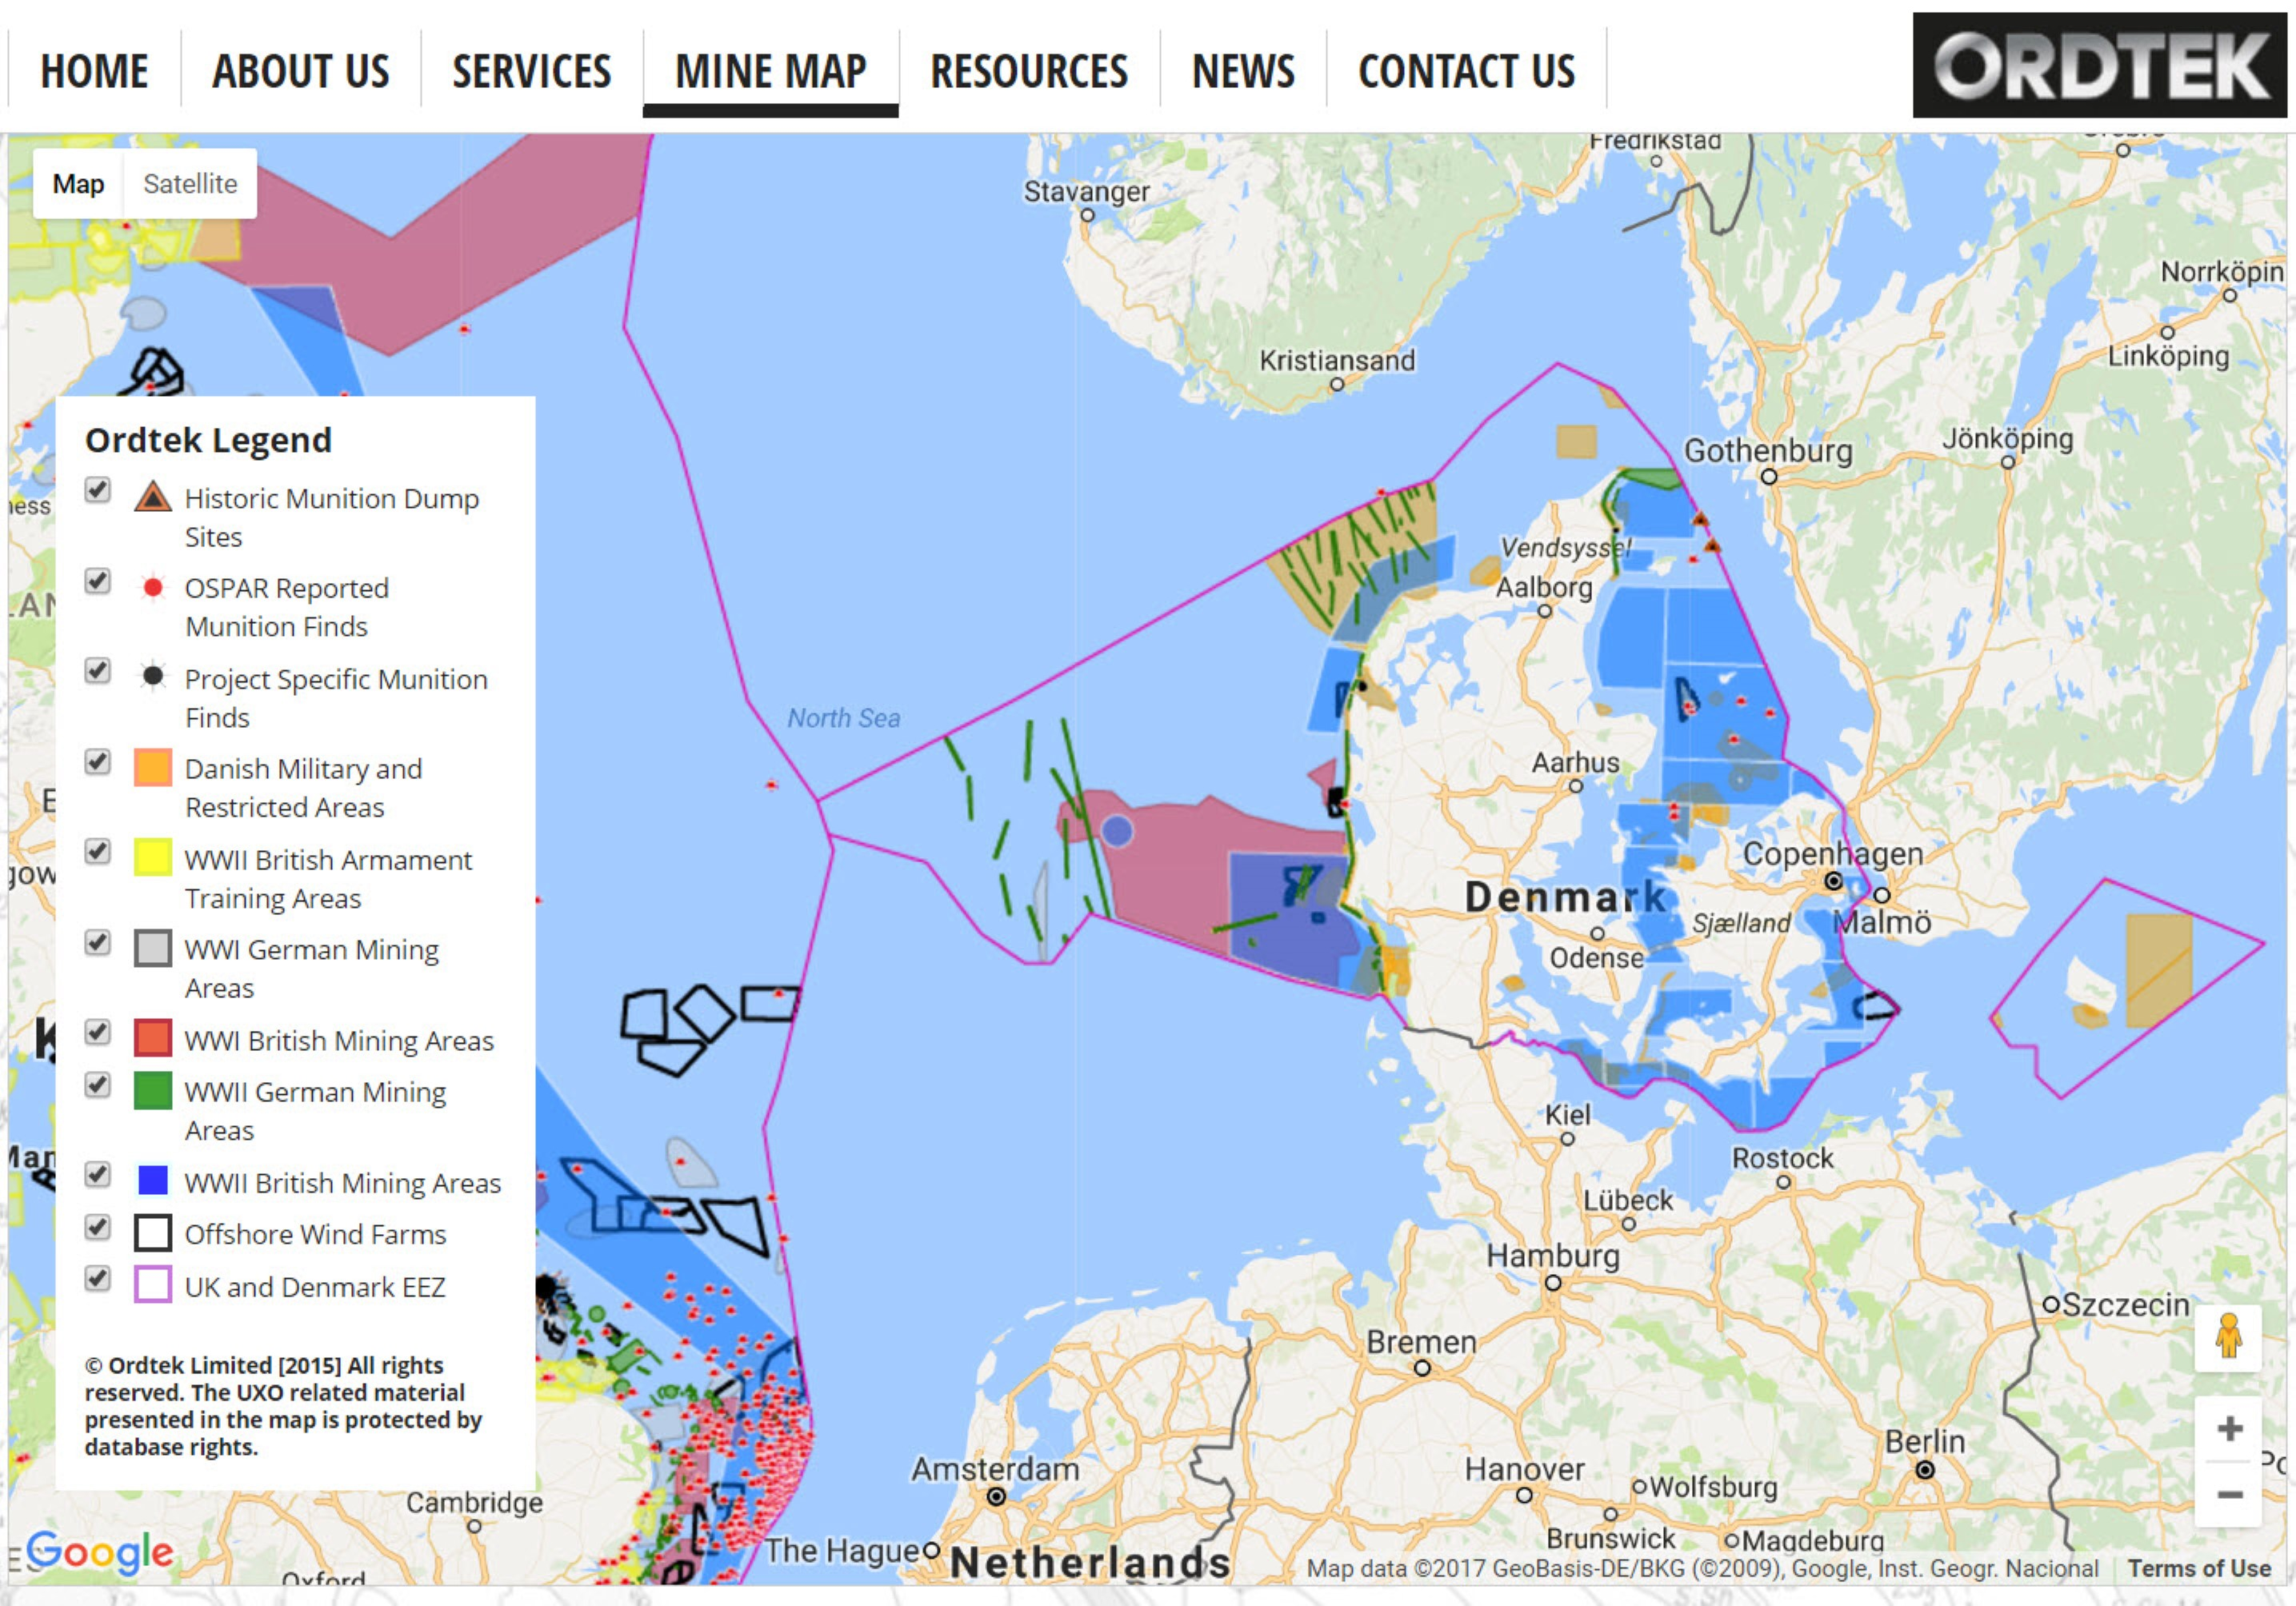 Expanding Mine Map helps spot danger at Danish wind farm site